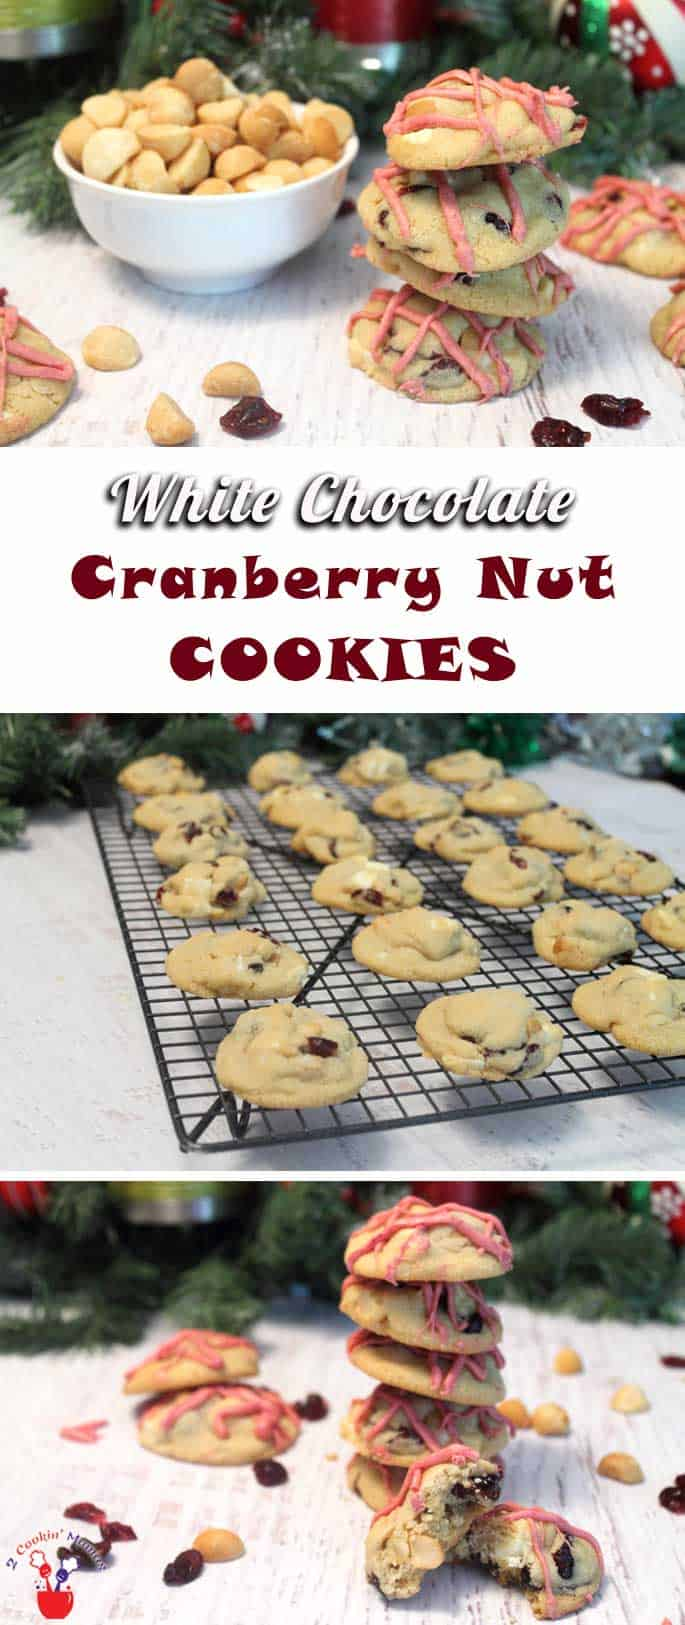 White Chocolate Cranberry Nut Cookies | 2 Cookin Mamas An ultra-chunky buttery cookie stuffed with crunchy macadamia nuts, creamy white chocolate chunks & chewy cranberries. One bite of this cookie will have you craving more!